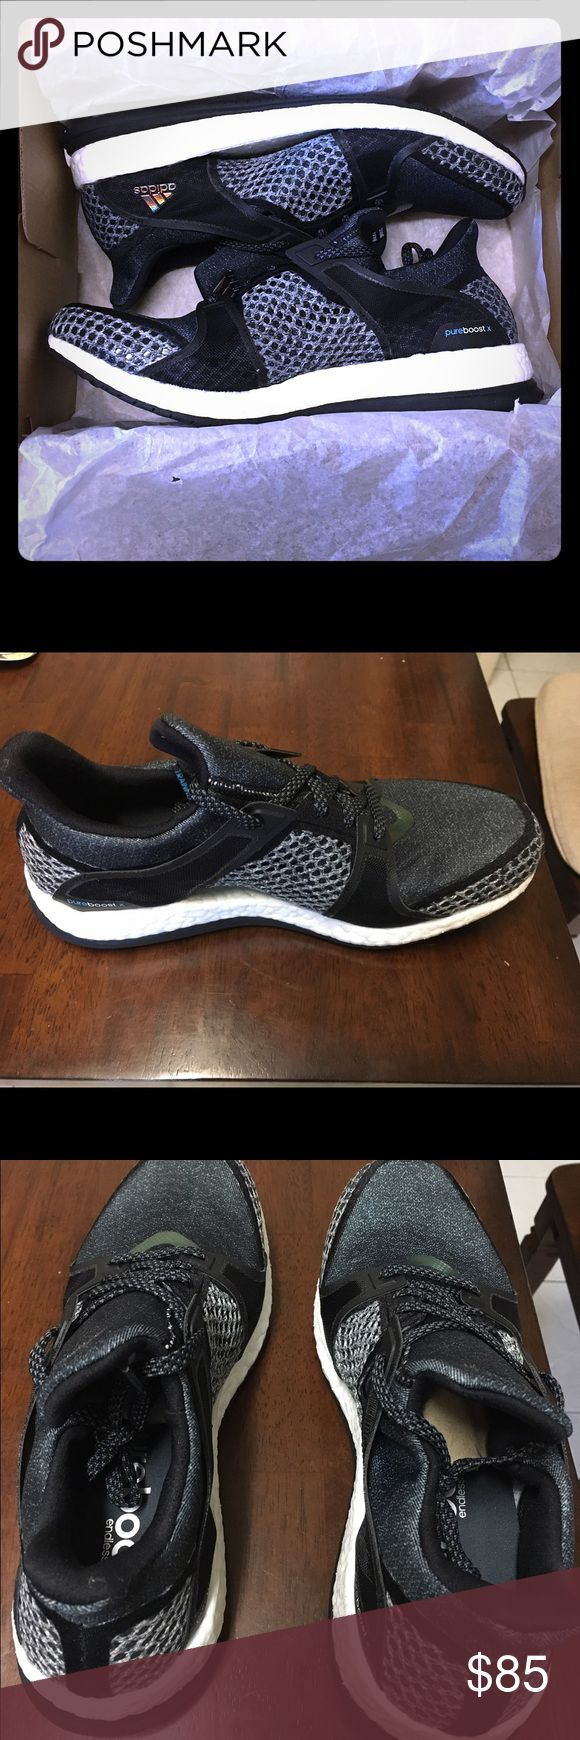 BRAND NEW Adidas Pure Boost X TR trainers! 💪 Super comfortable and stylish tennis shoes, perfect for the gym or everyday. Also extremely light weight making it very easy to travel with day to day or on extended trips. Never been worn, brand new straight from the manufacturer. Adidas Shoes Athletic Shoes